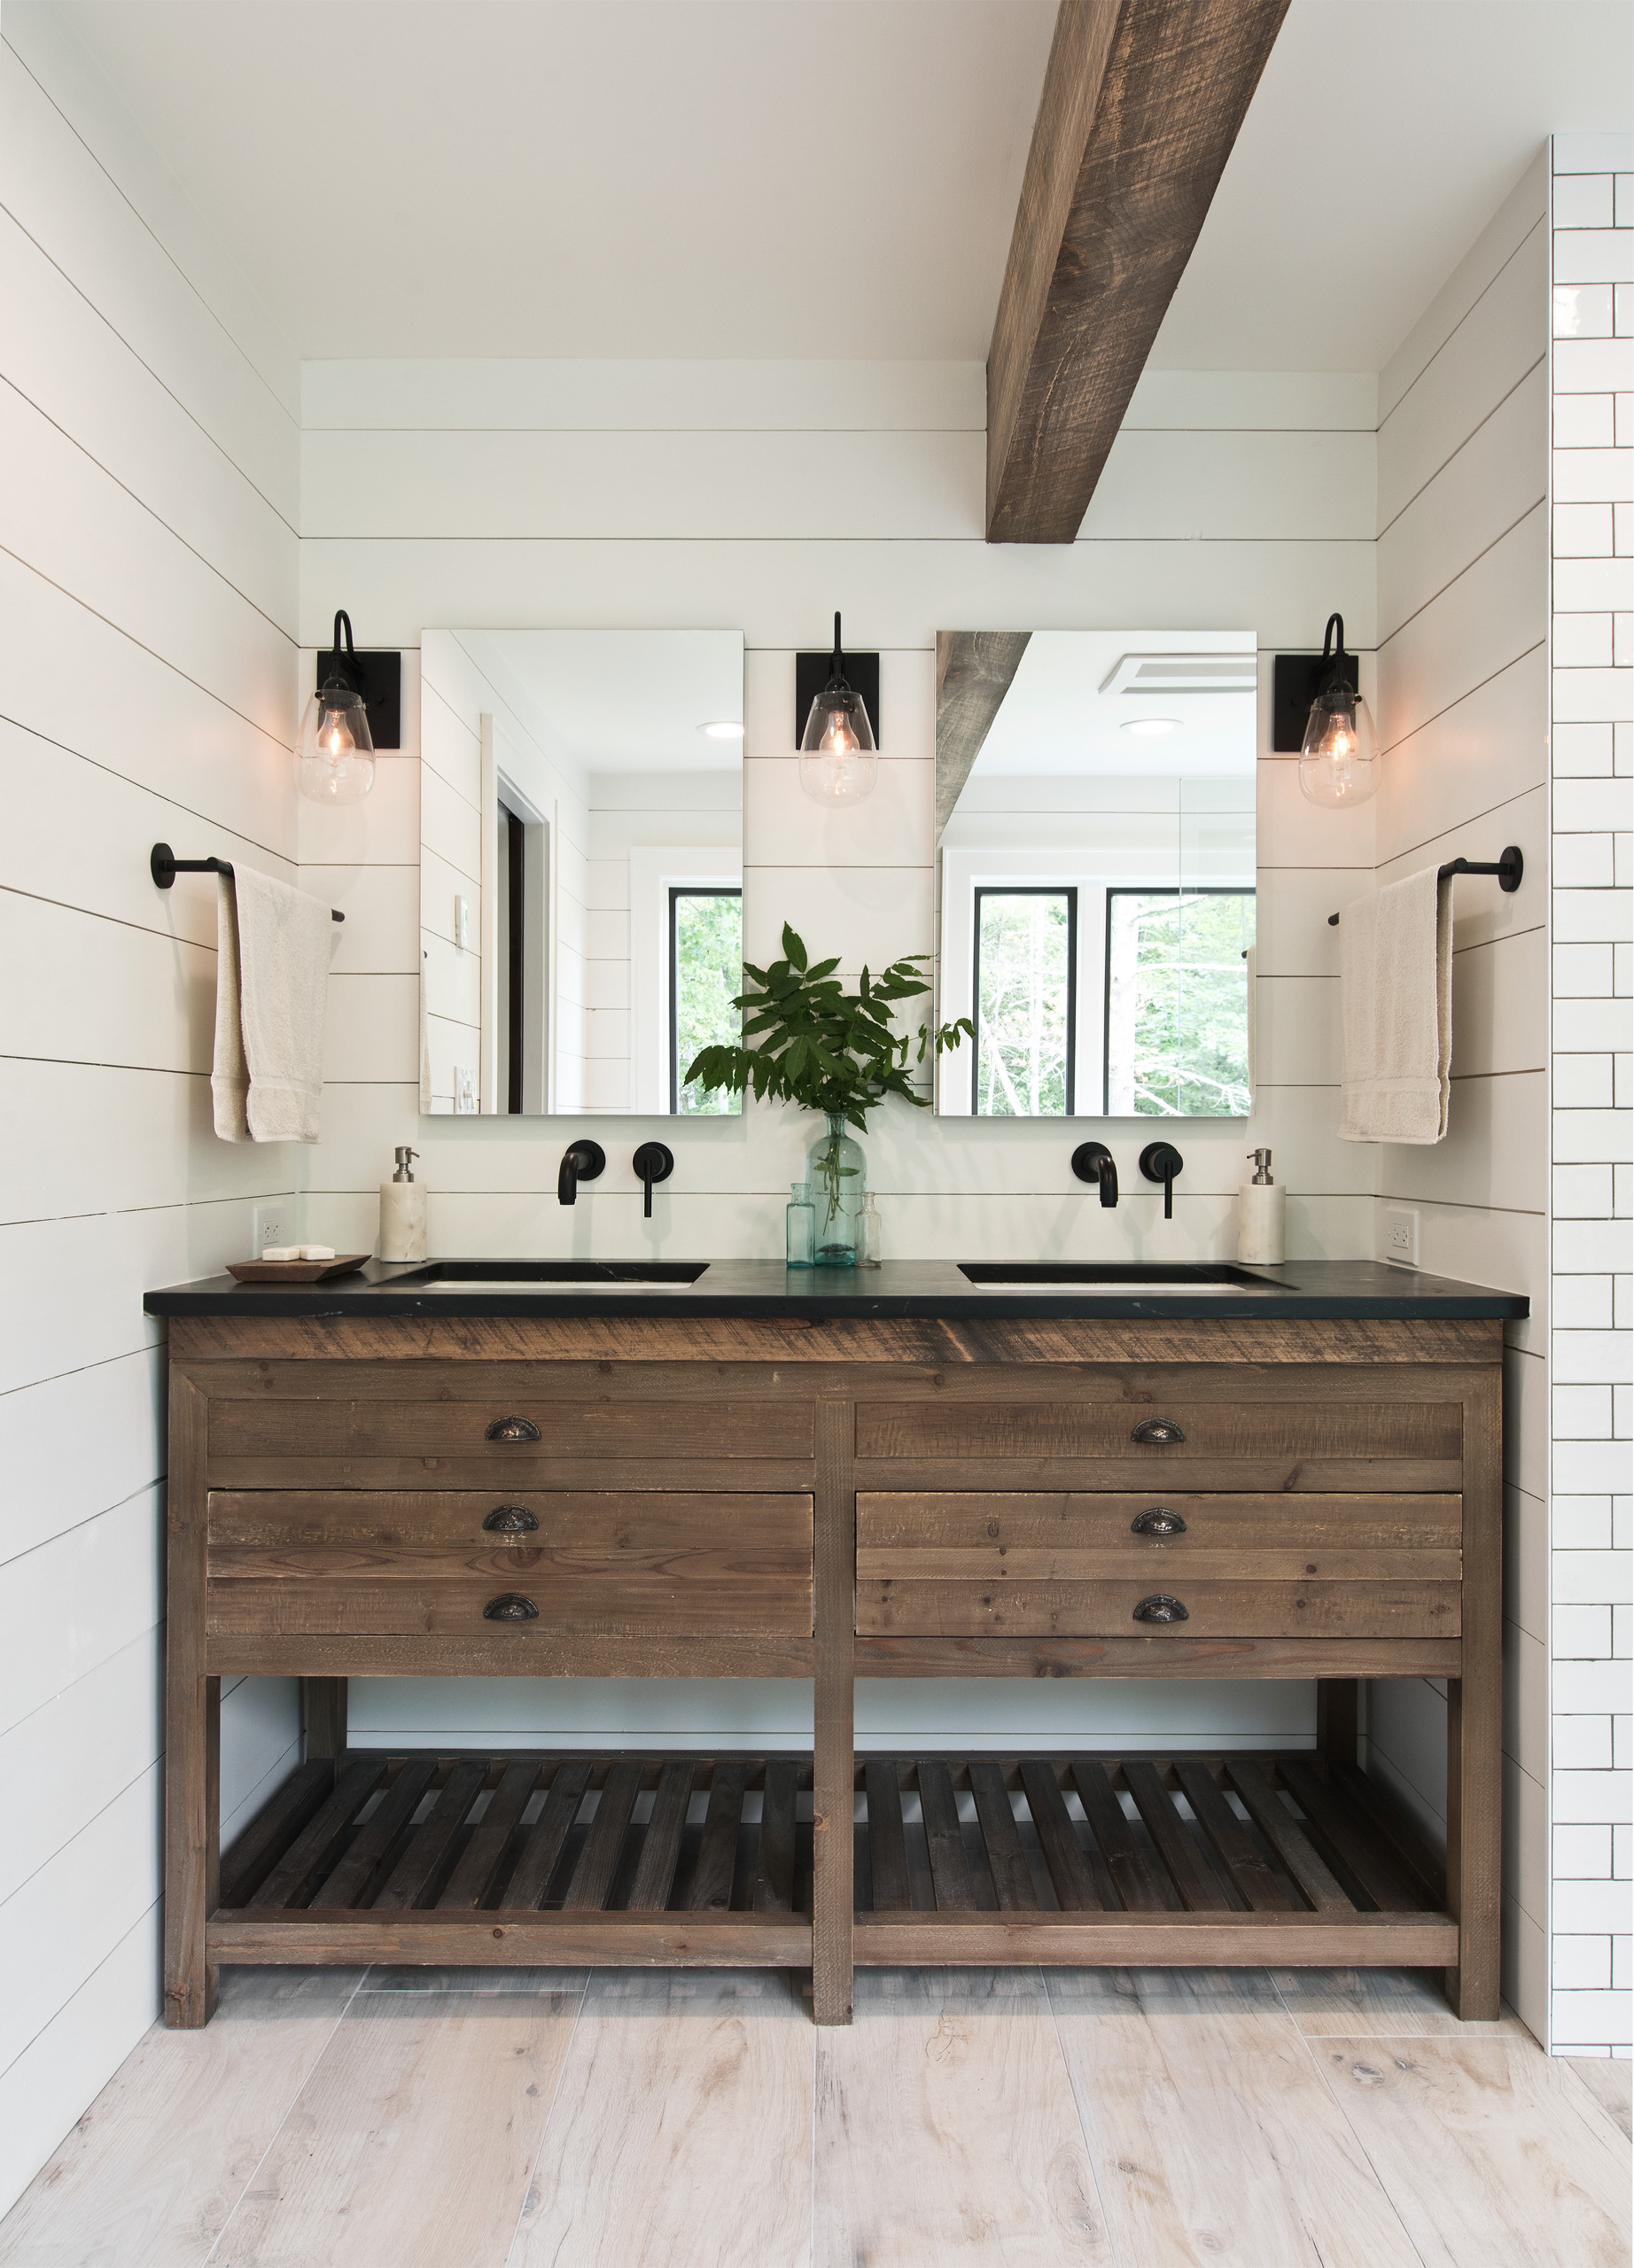 75 Beautiful Walk In Shower Pictures Ideas February 2021 Houzz